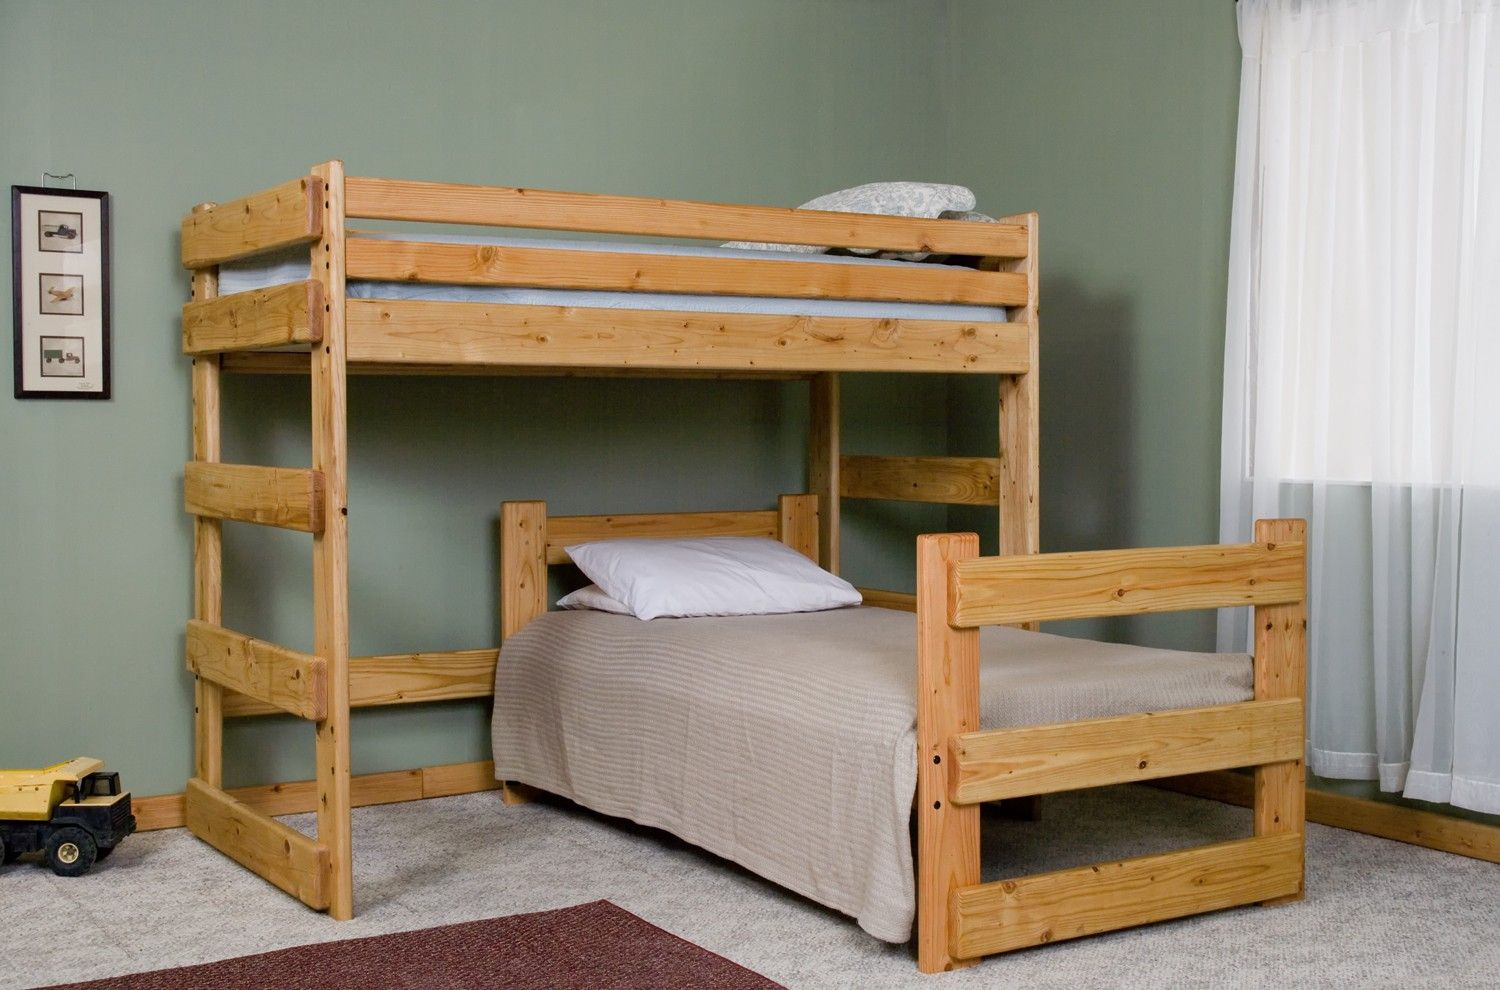 T Shaped Bunk Beds Google Search Bunk Bed Plans Wooden Bunk